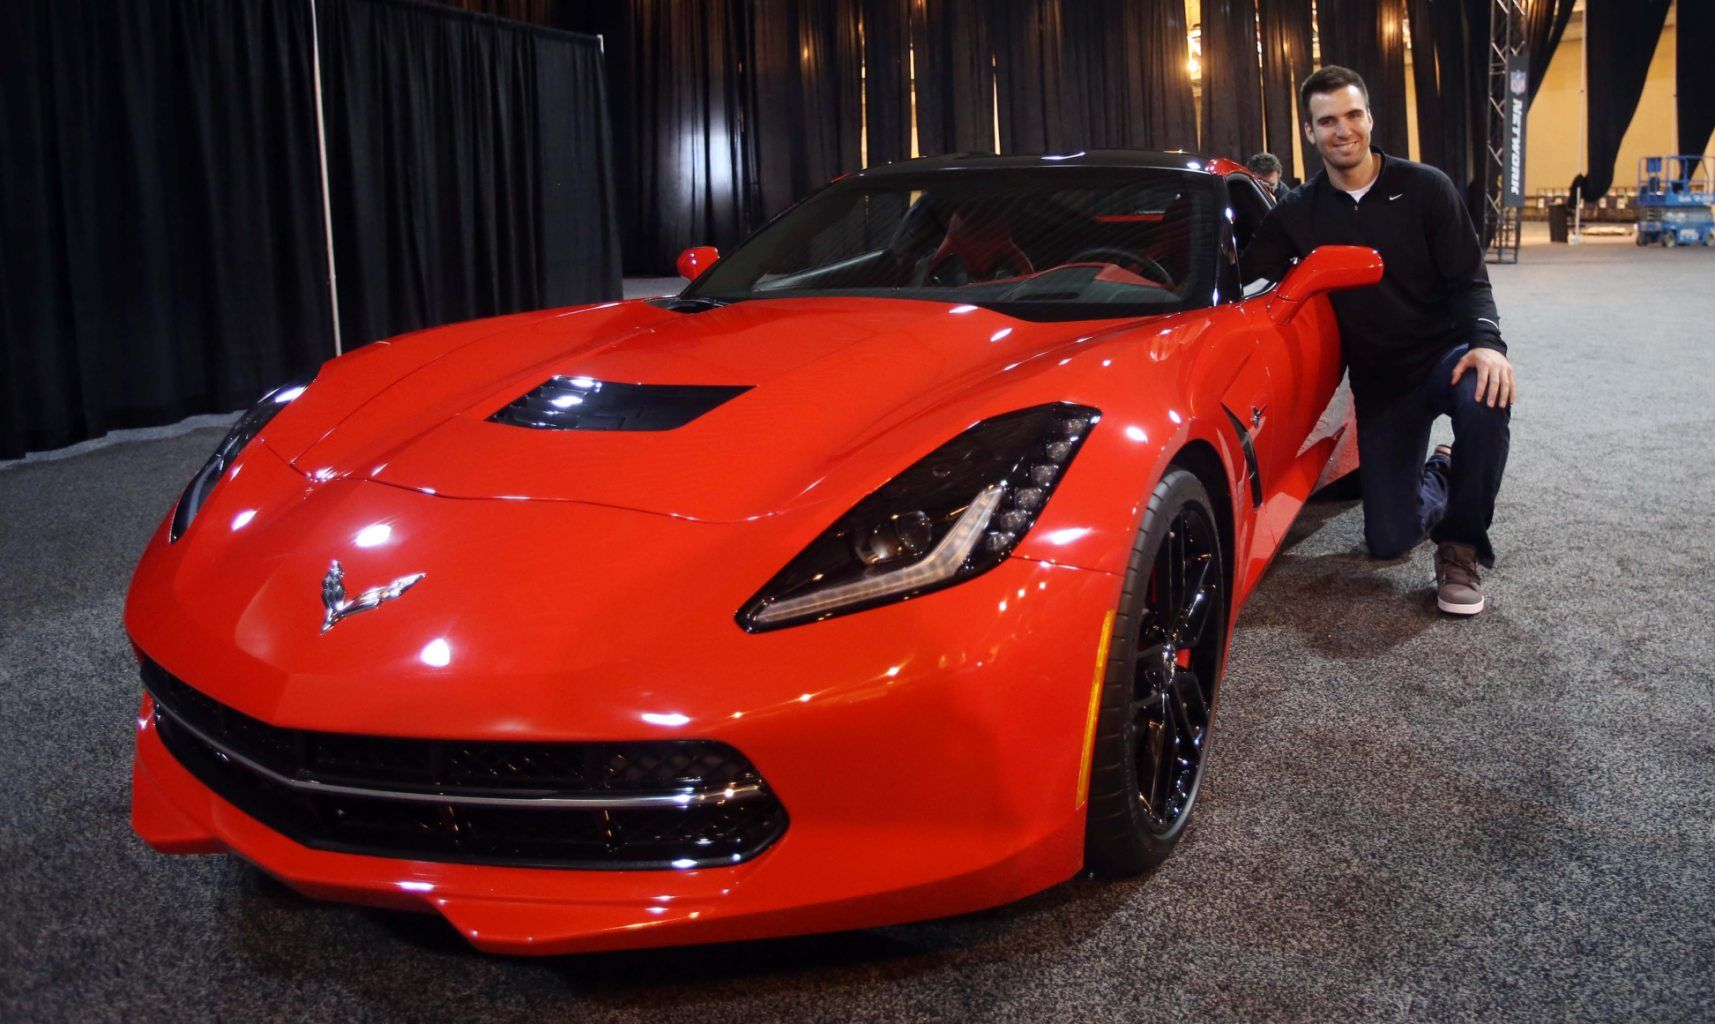 For Winning The Mvp Award Of Super Bowl Xlvii Joe Flacco Was Able To Drive Off In A Brand New 2014 Corvette Sting Super Bowl Cbs Sports 2014 Corvette Stingray